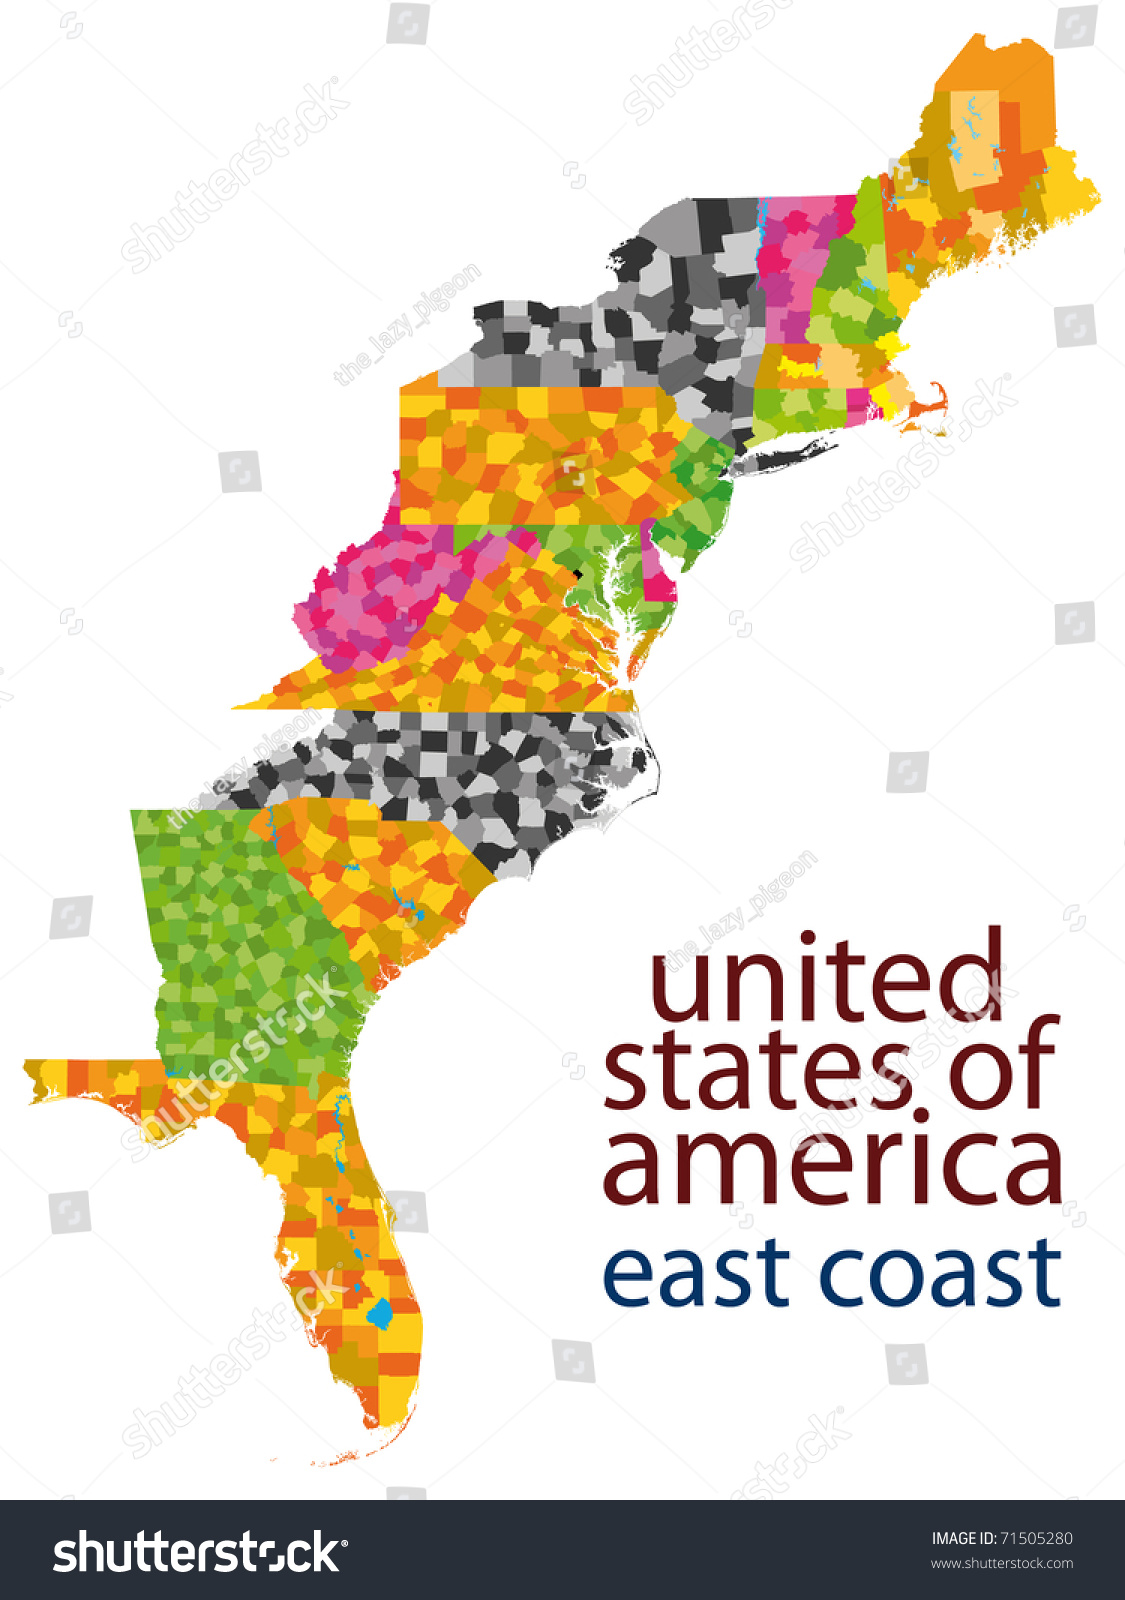 Usa East Coast Map Stockillustration 71505280 – Shutterstock